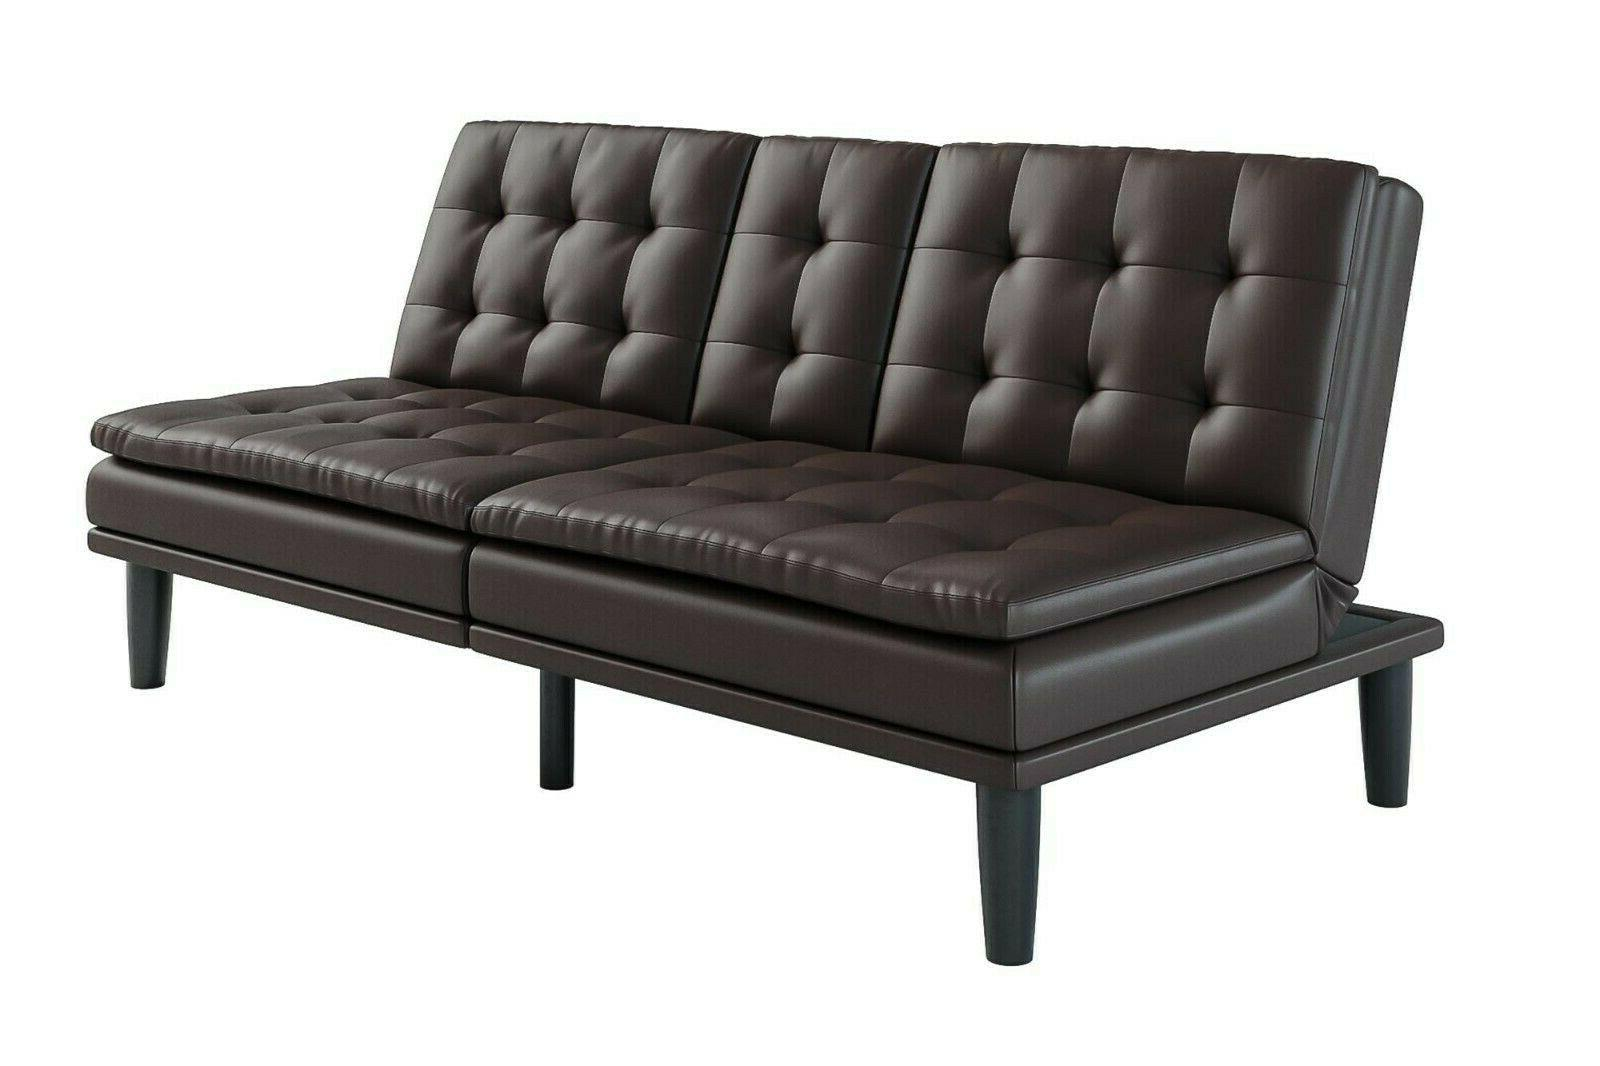 Sofa Bed Couch Futon Leather Style